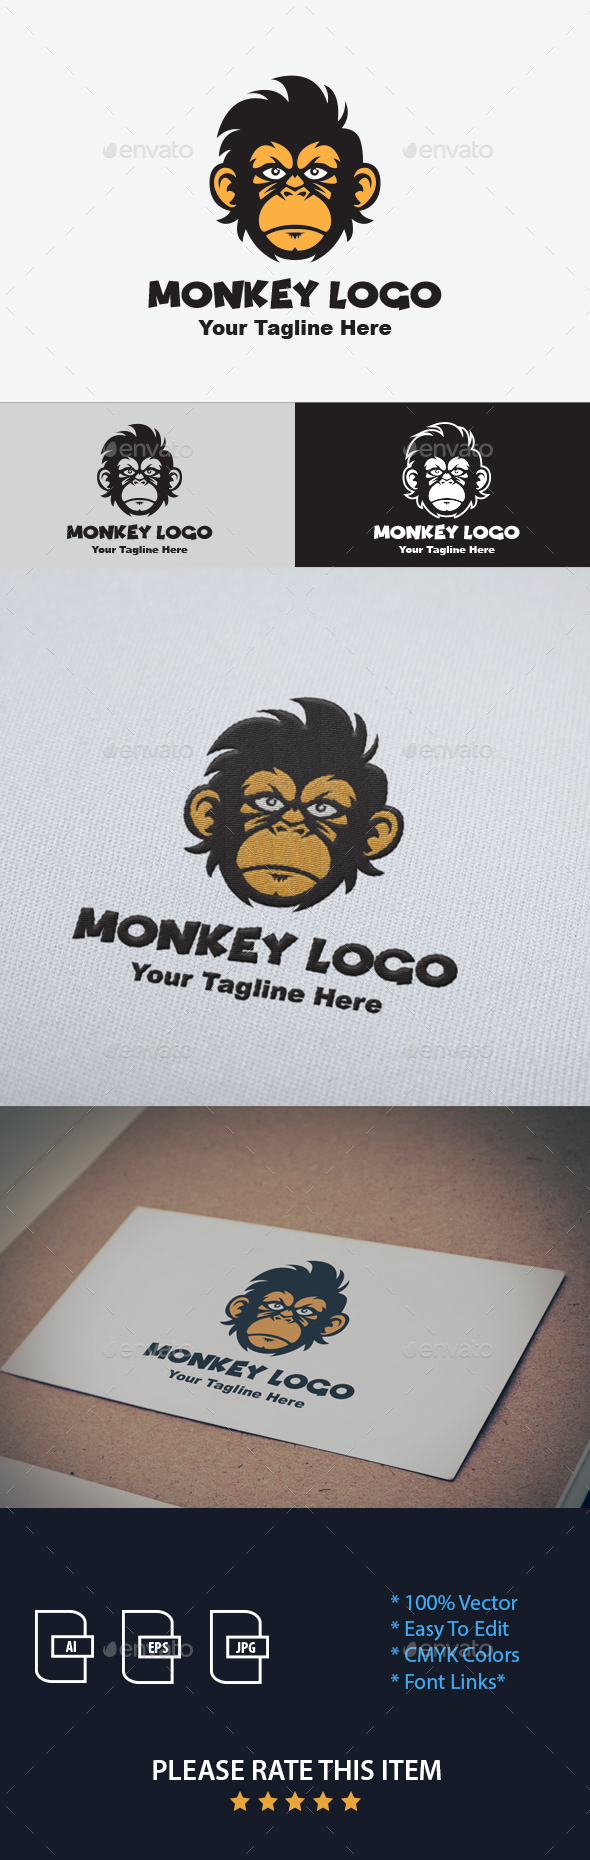 Monkey Logo Design Template - Animals Logo Templates